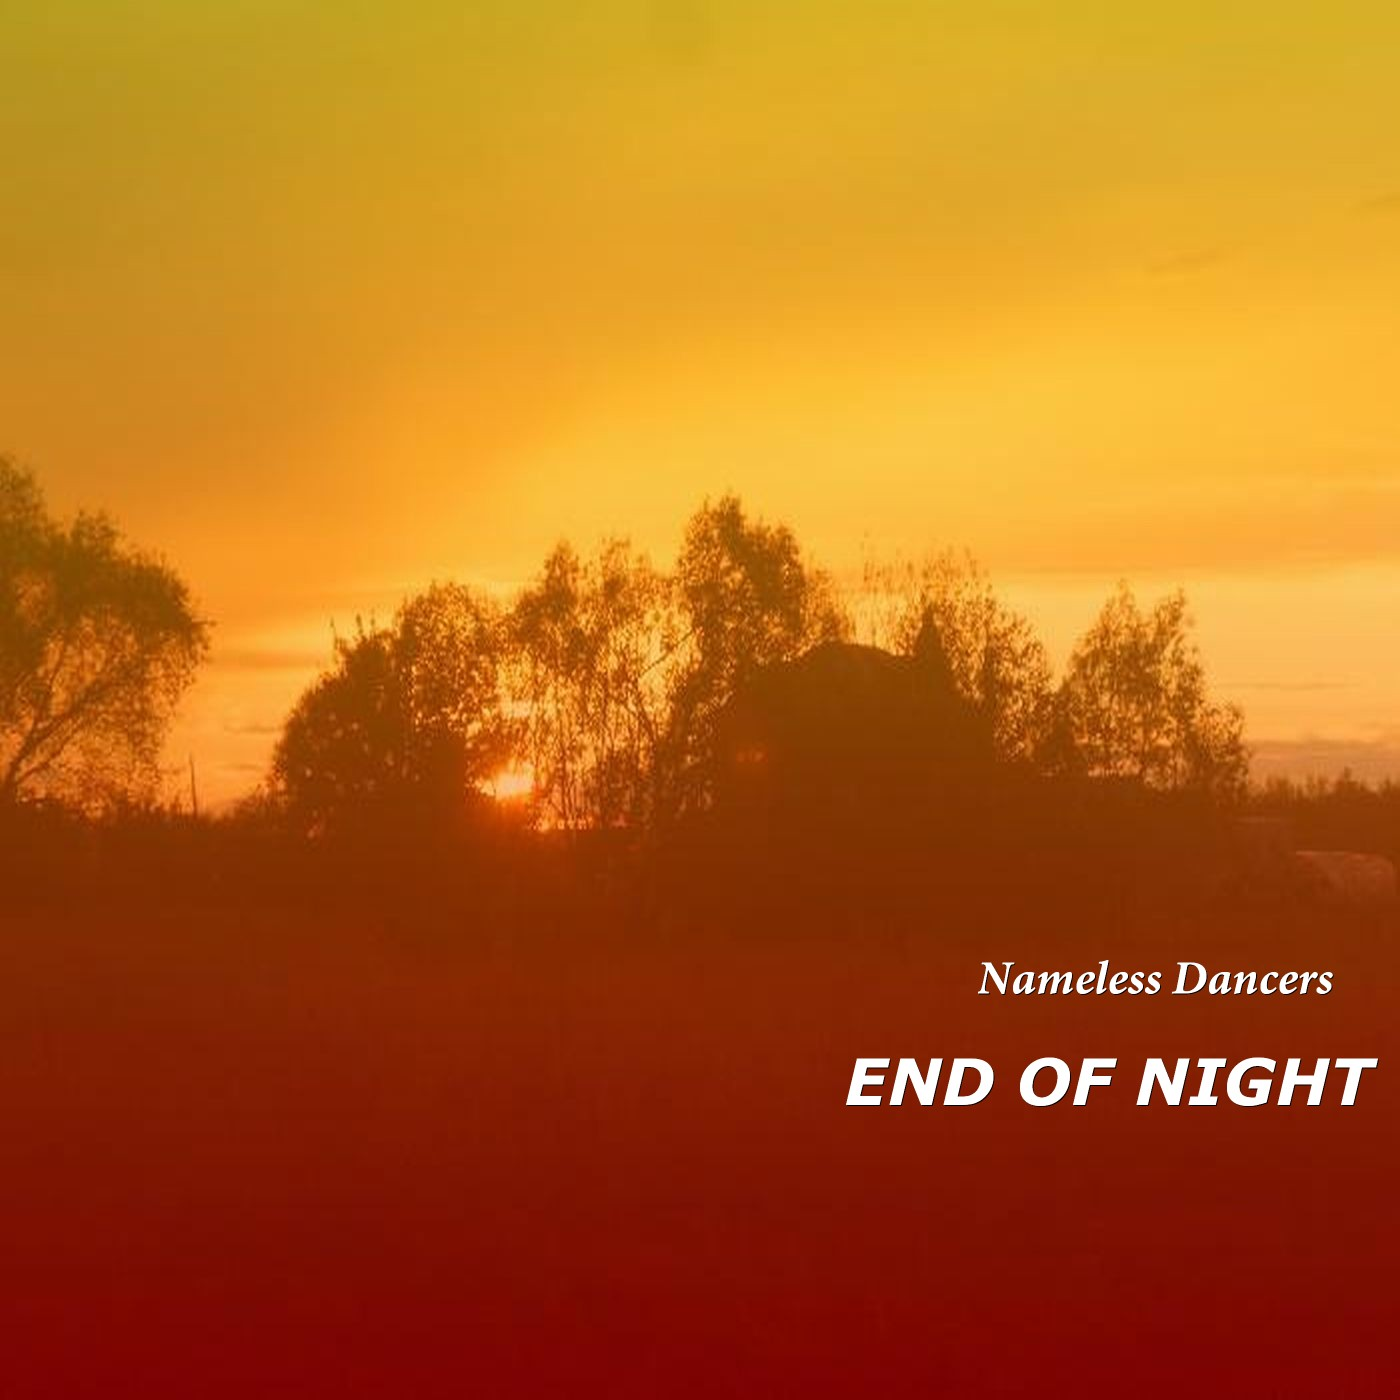 http://www.archive.org/download/45rpm050-2011NamelessDancers-EndOfNight/a_Cover-A.jpg